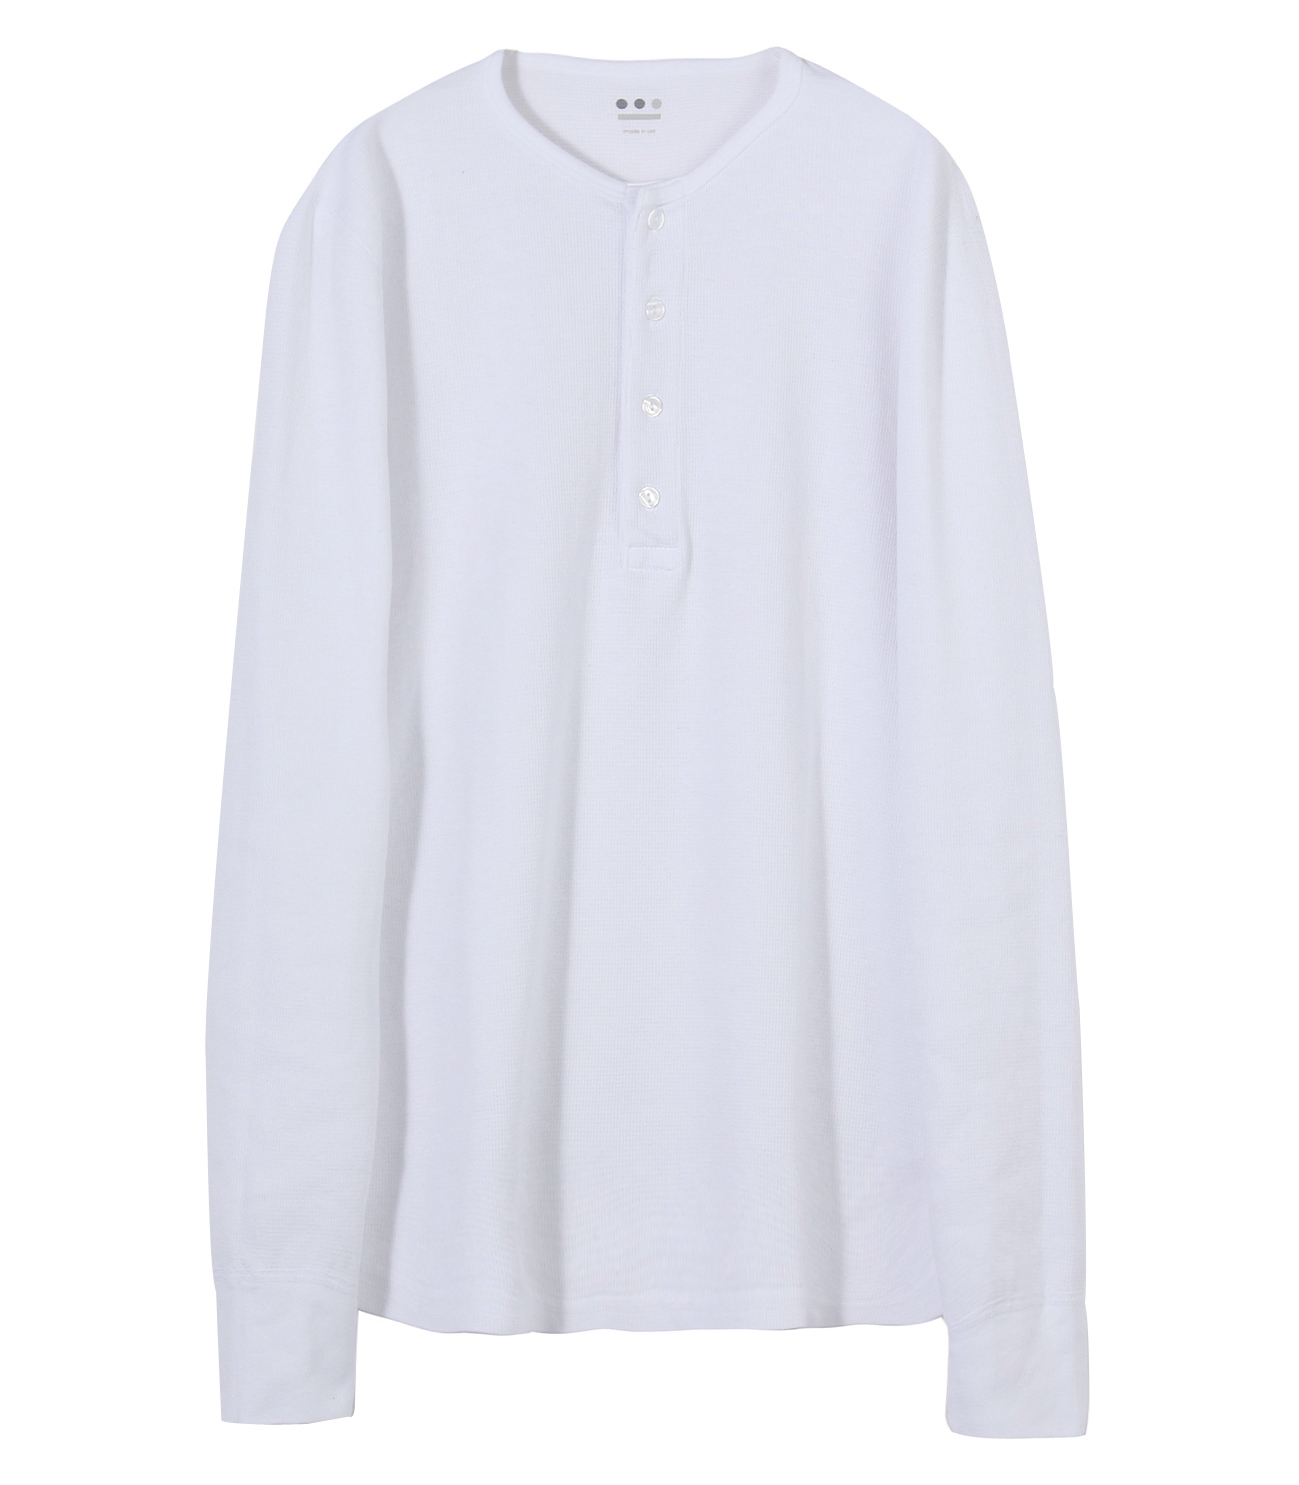 brushed thermal l/s henley 詳細画像 white 1